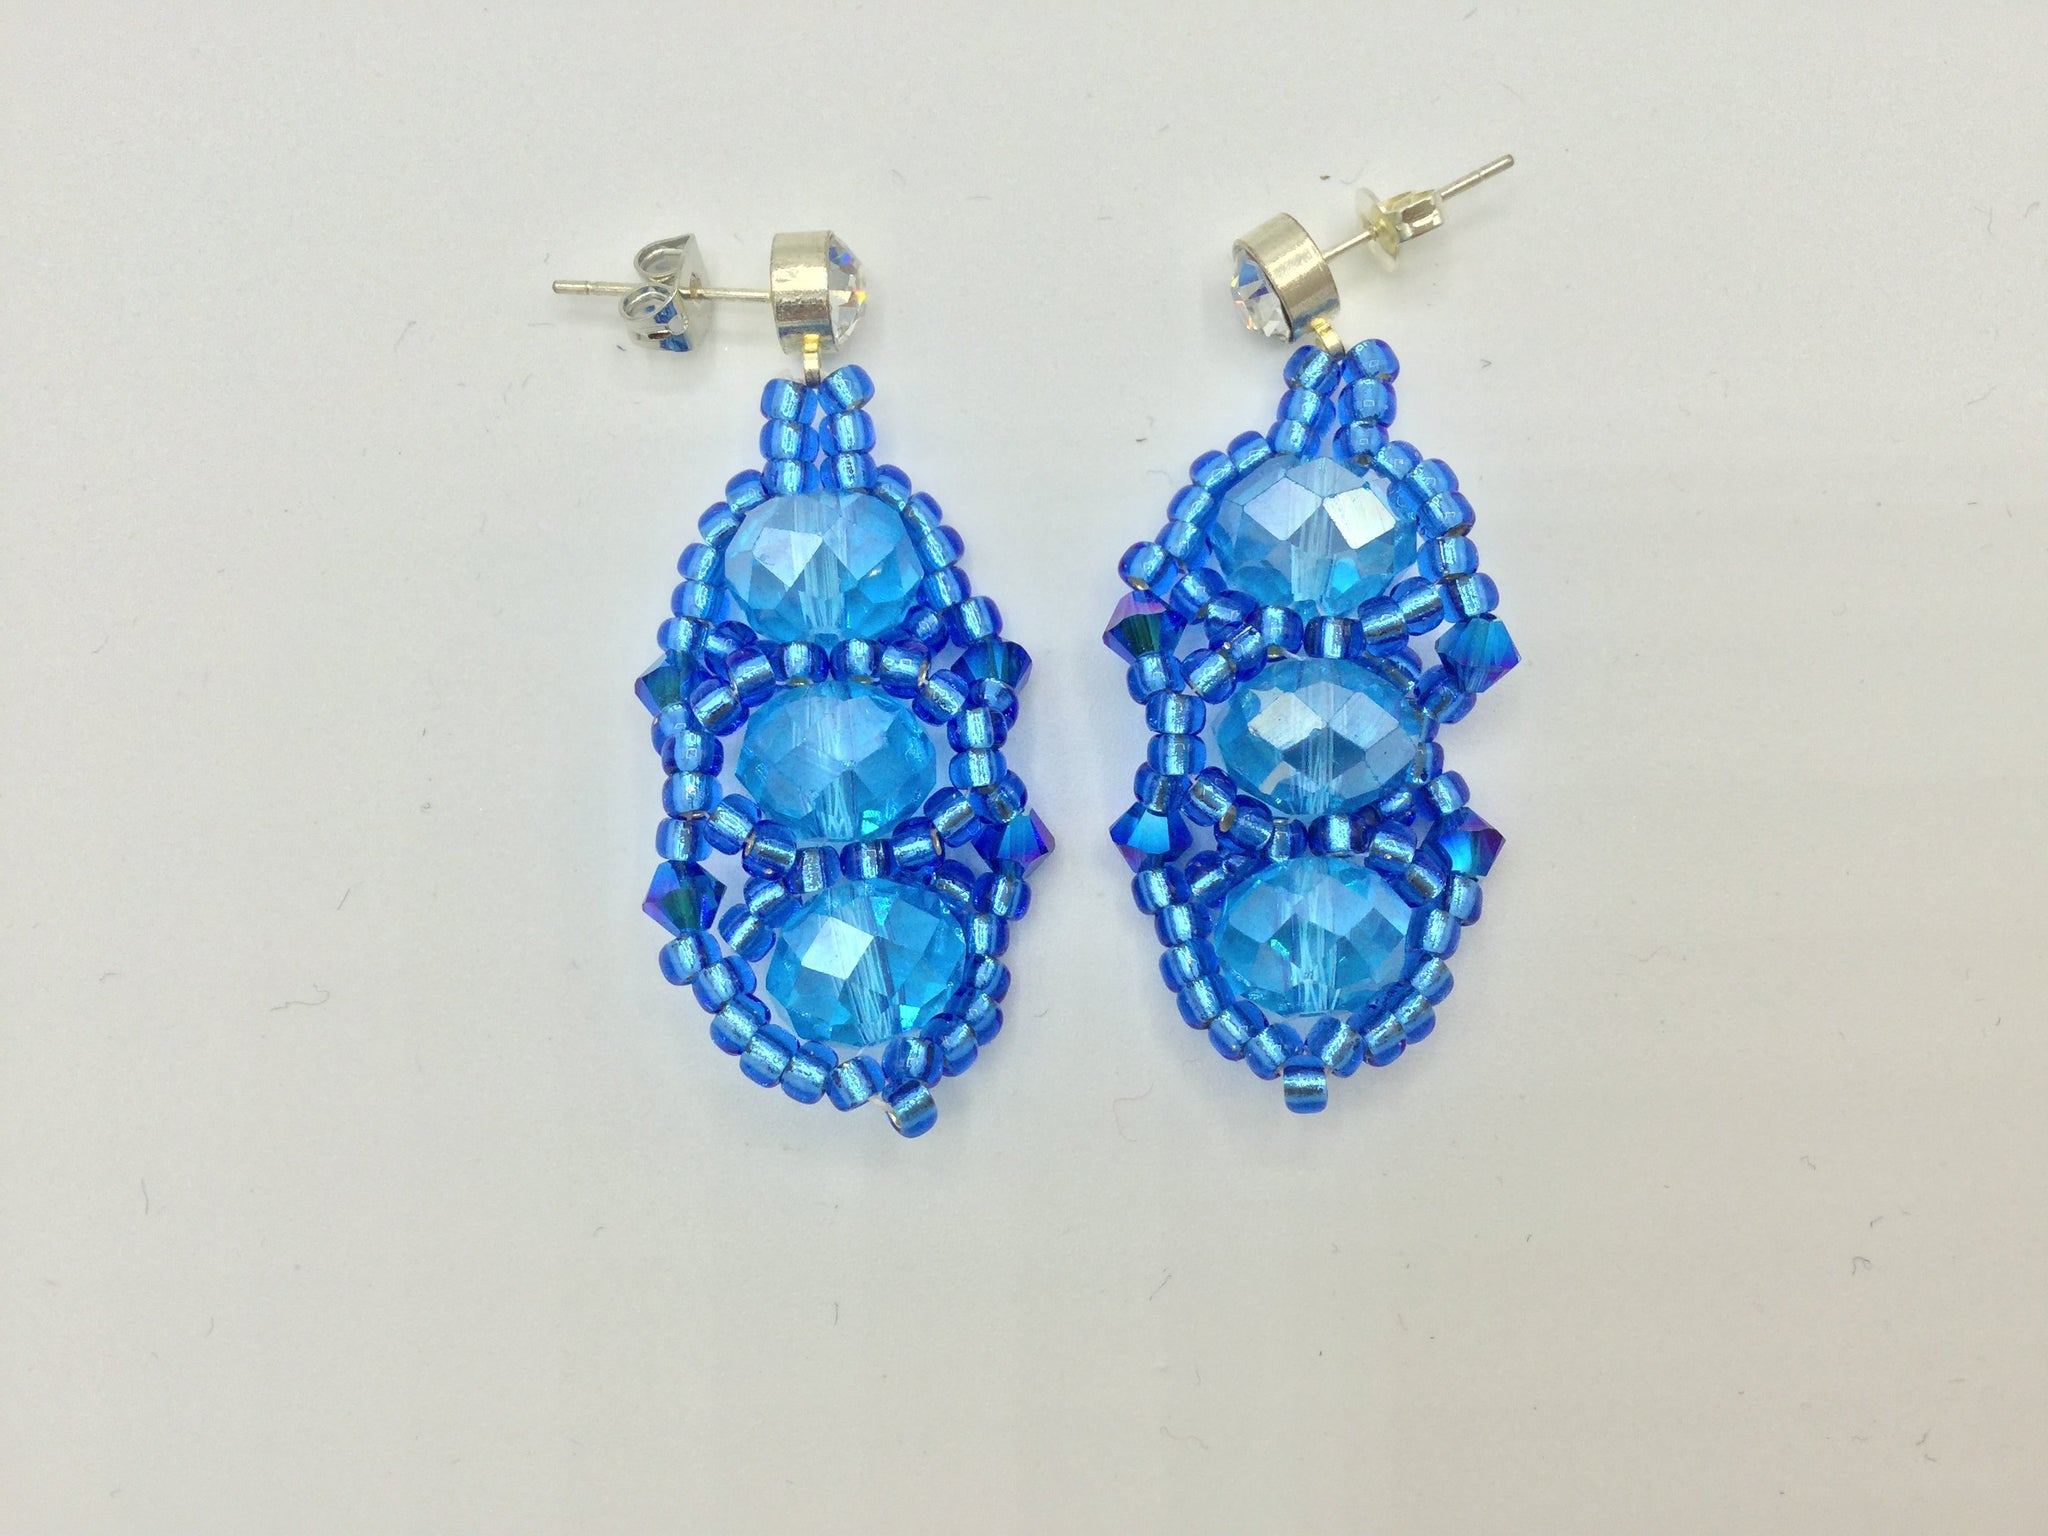 Delphin Earrings